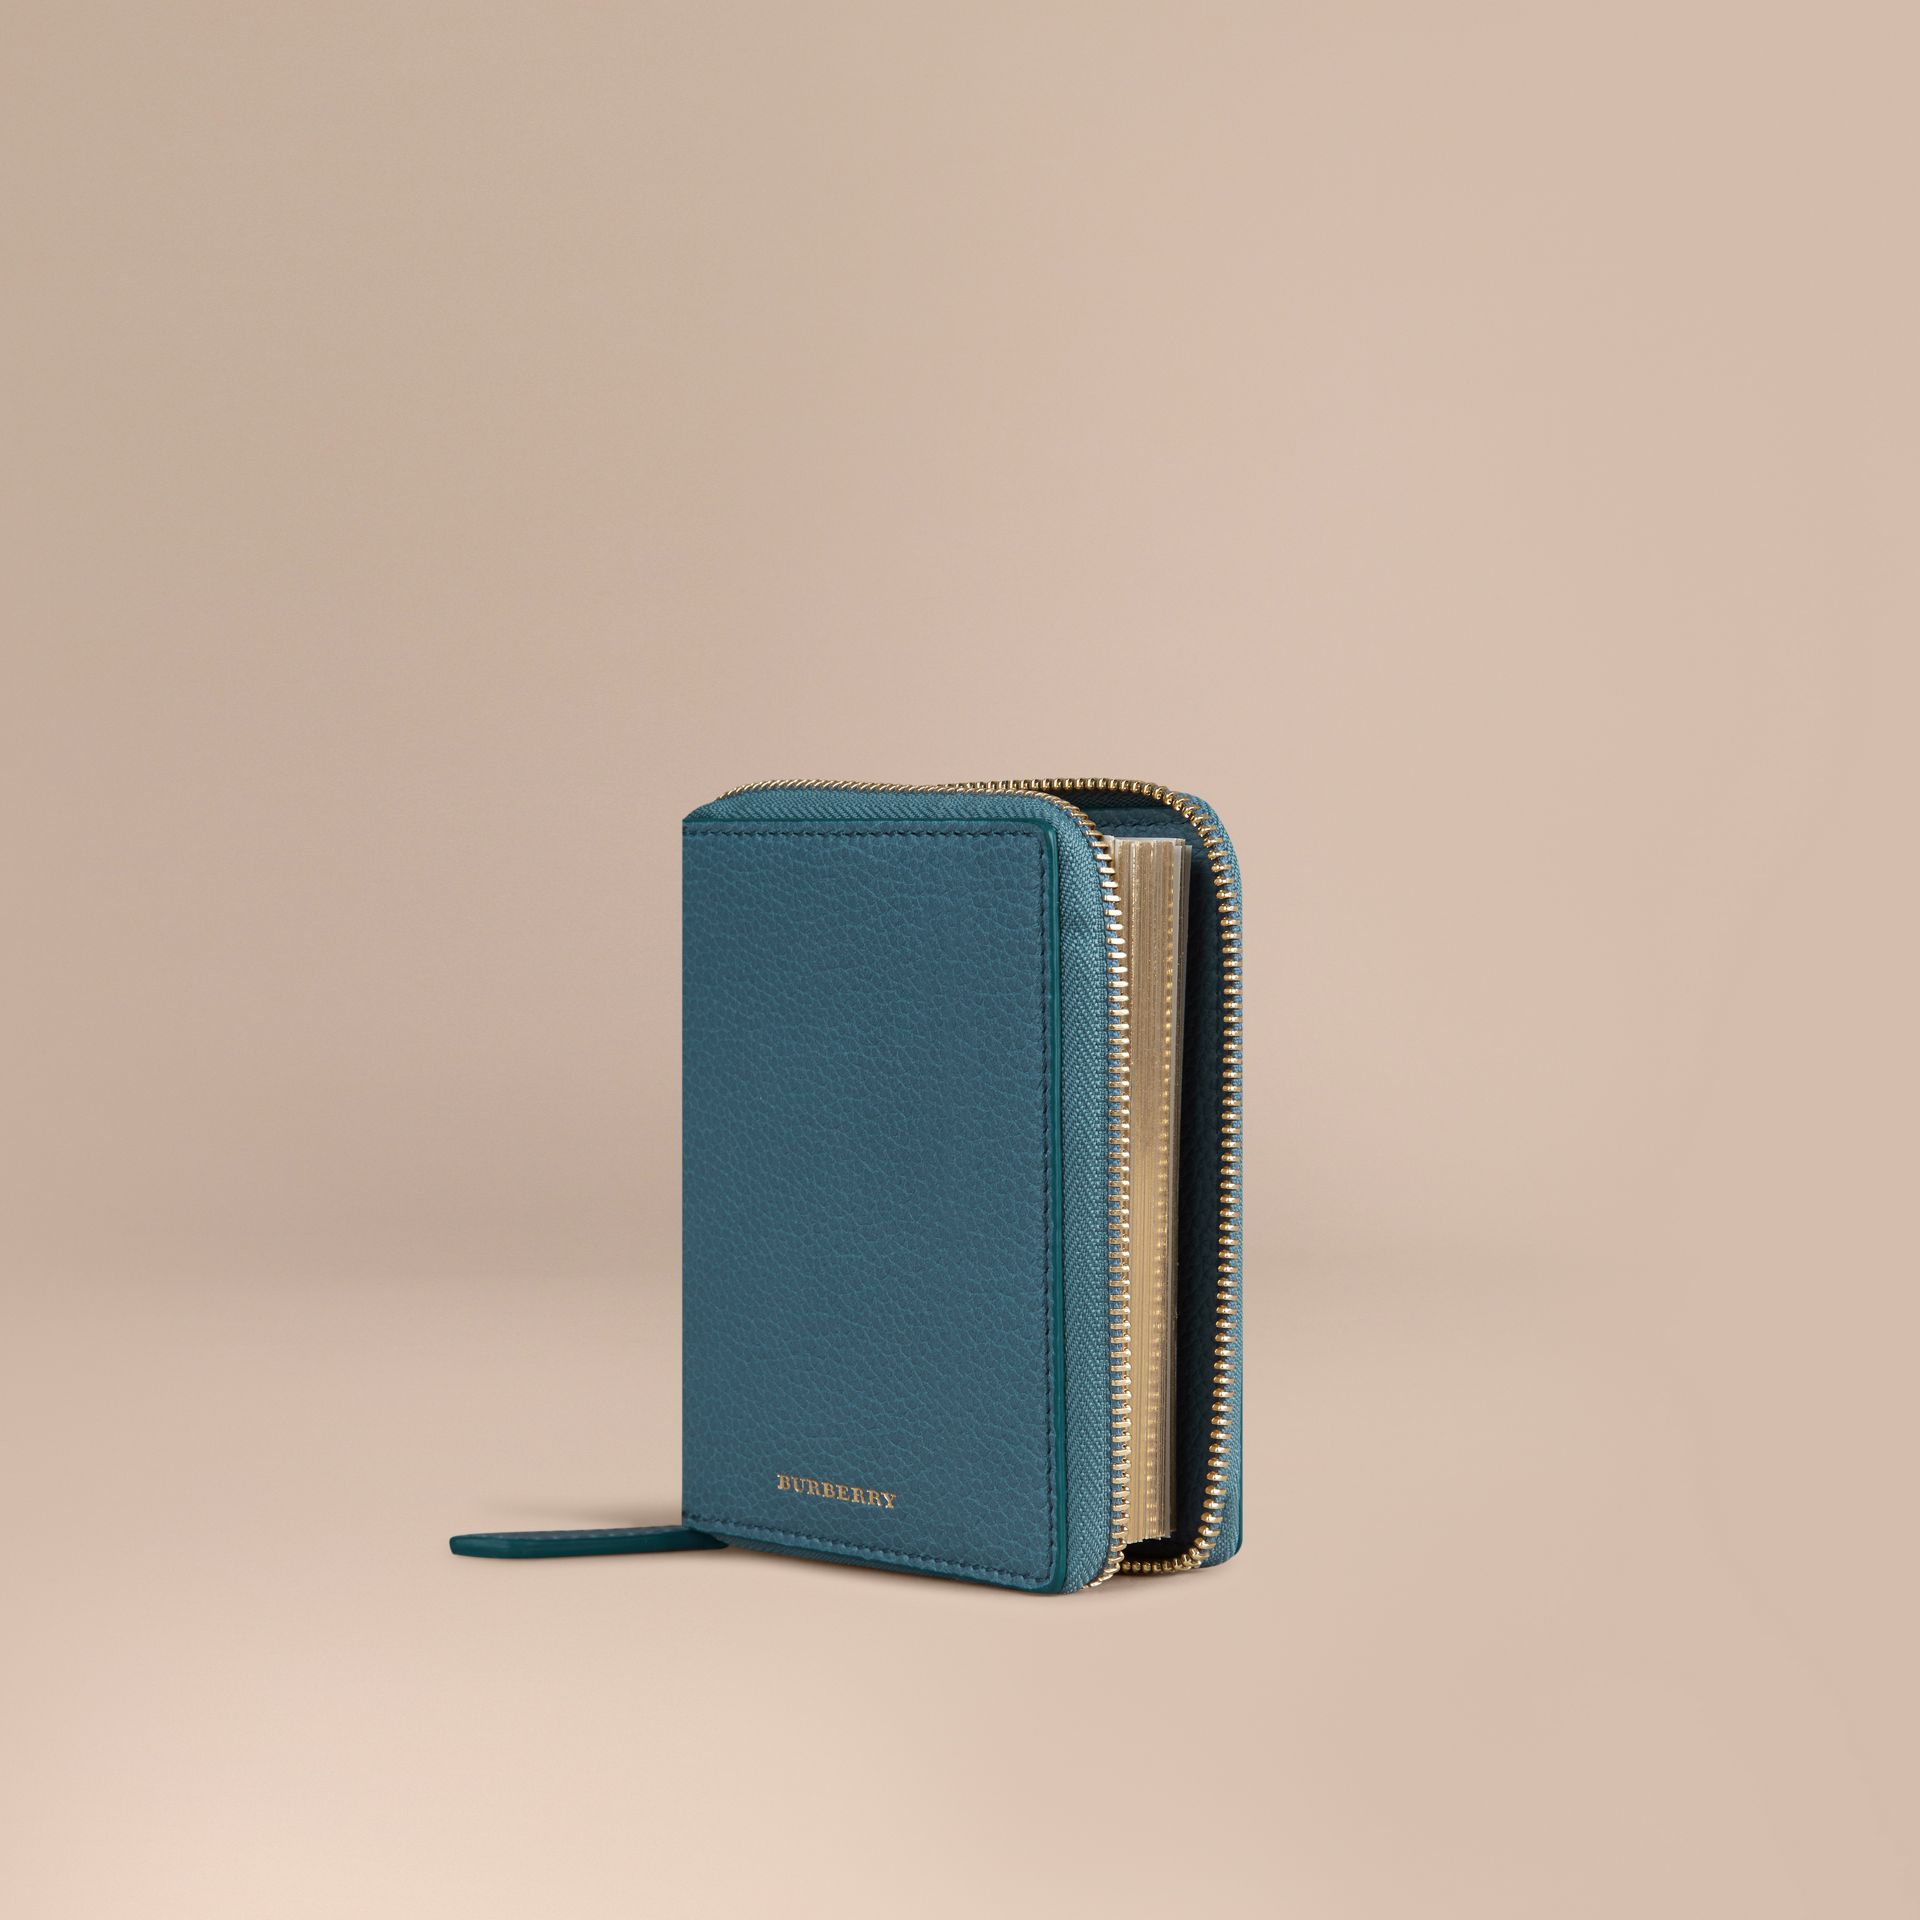 Ziparound Grainy Leather Mini Notebook in Dusty Teal - gallery image 1